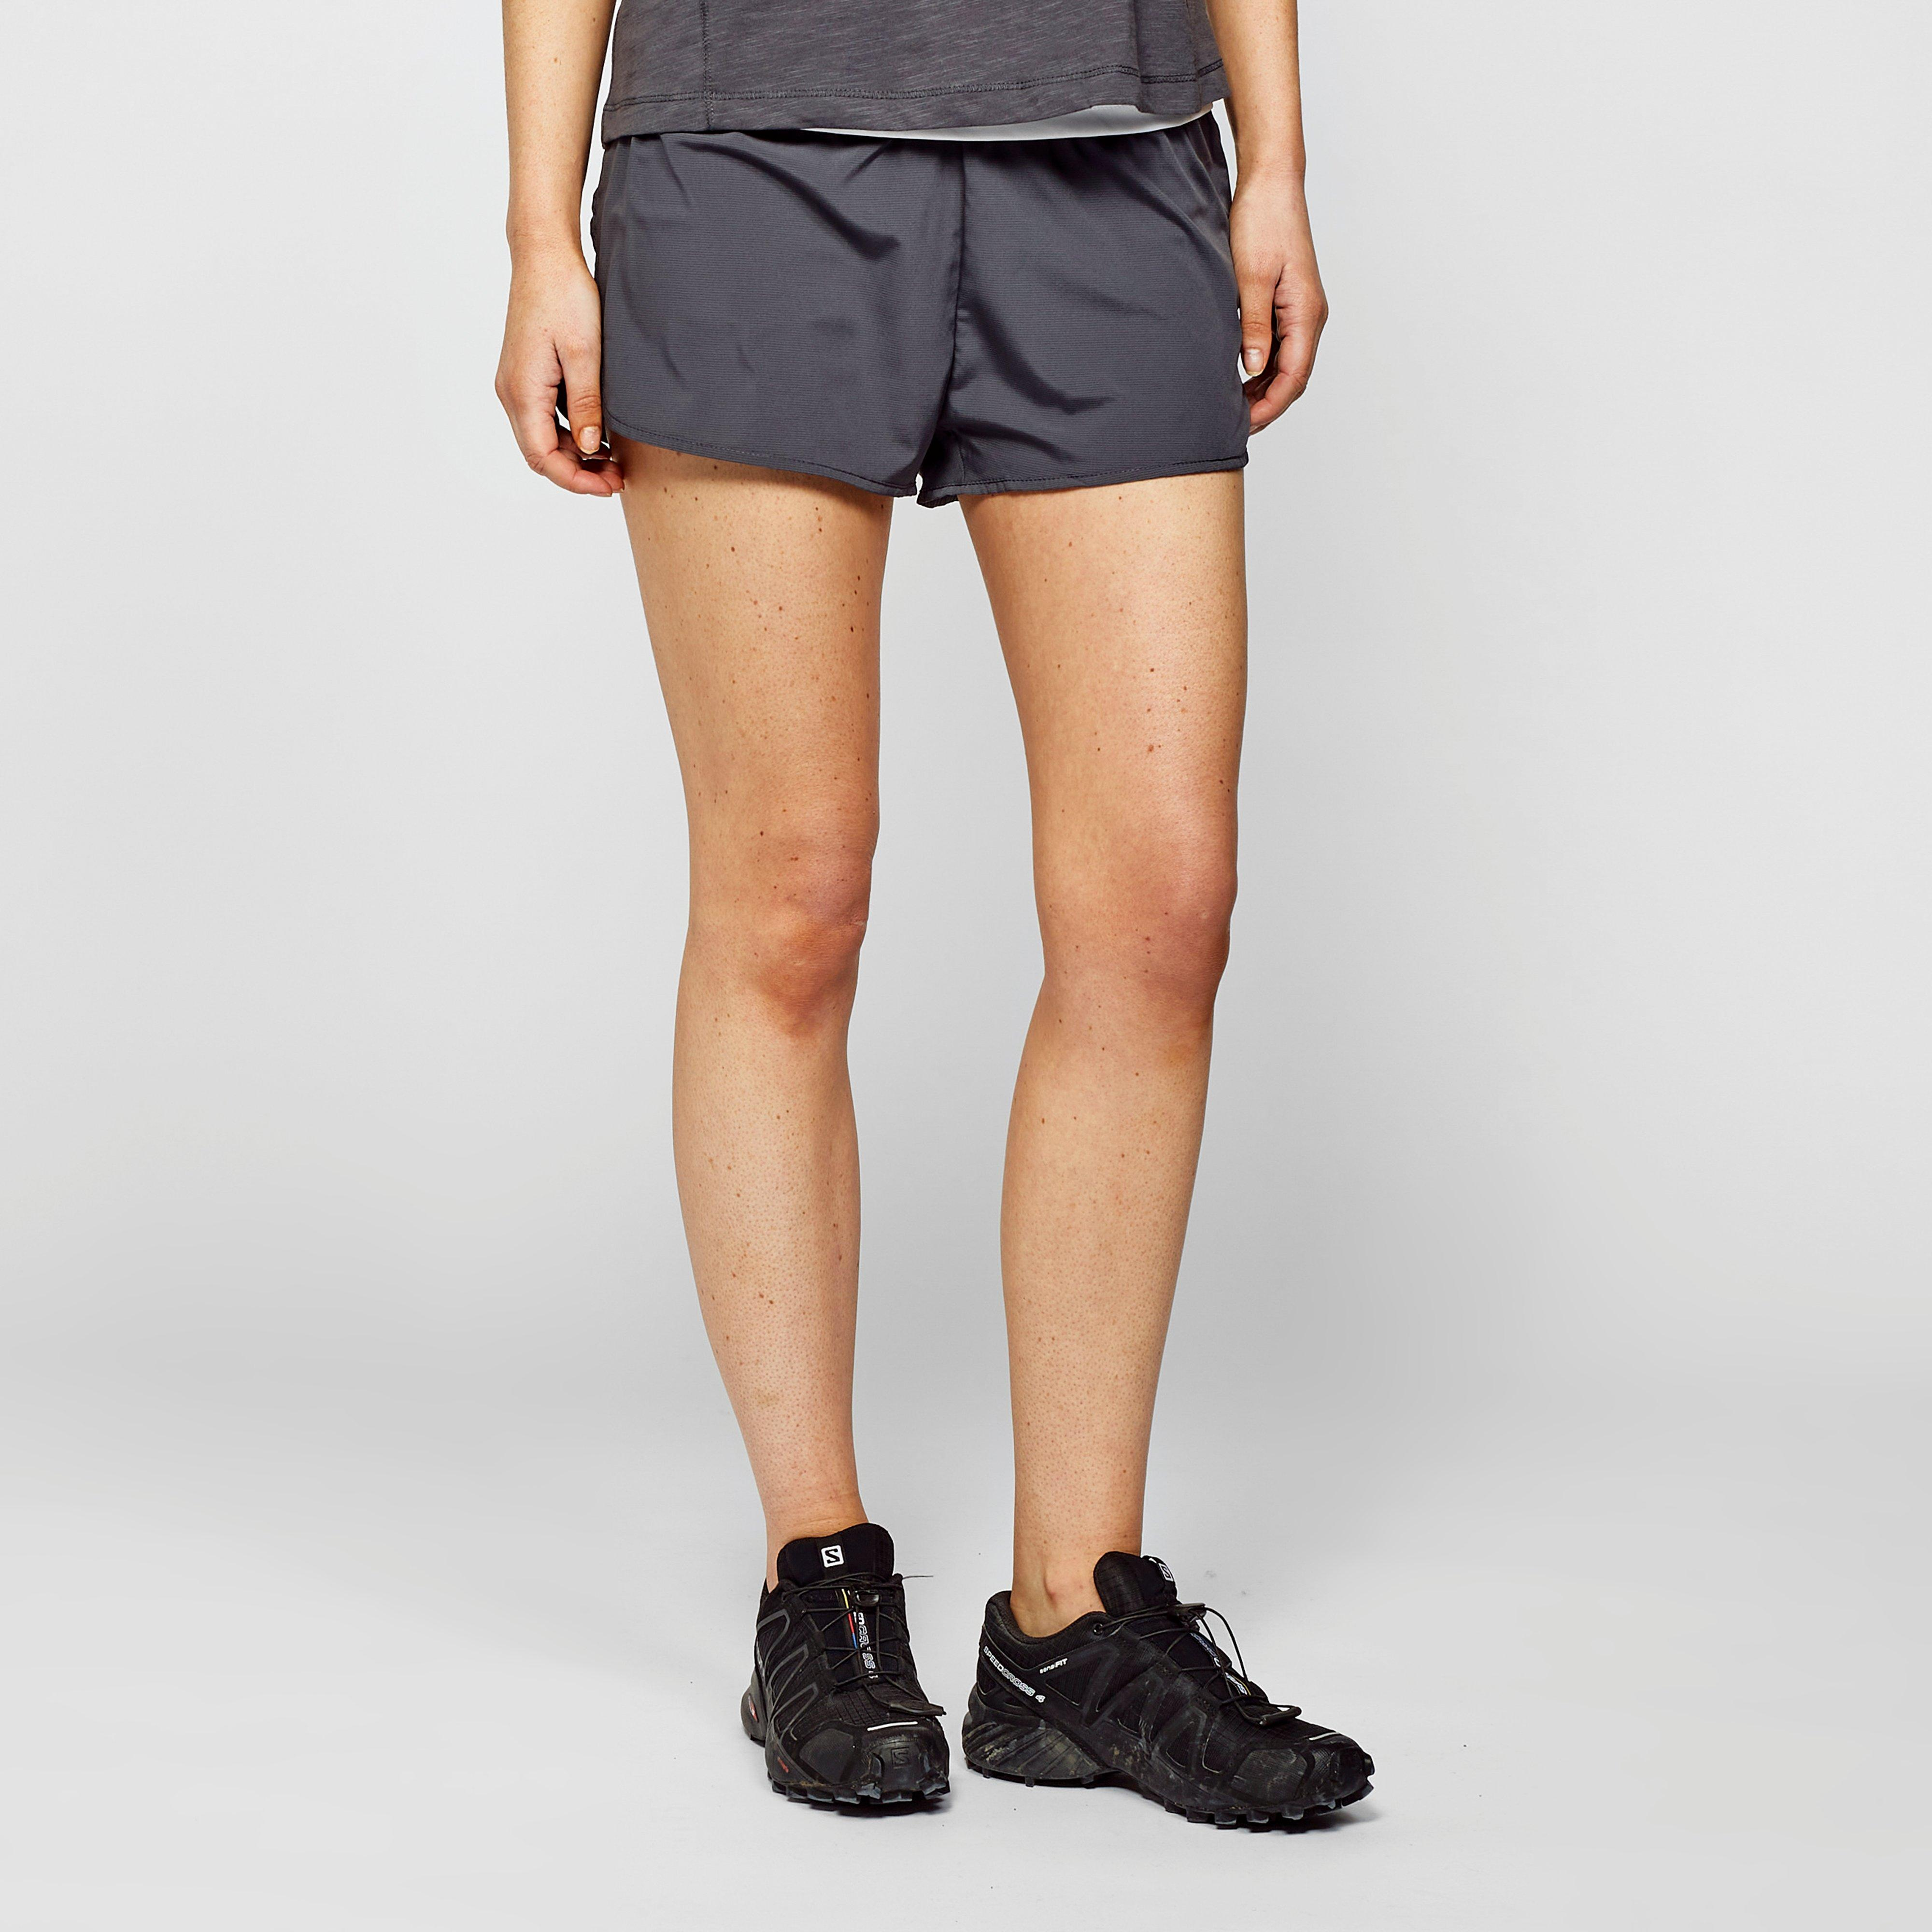 Dare 2B Women's Outrun Two-Layer Shorts - Grey/Dgy, Grey